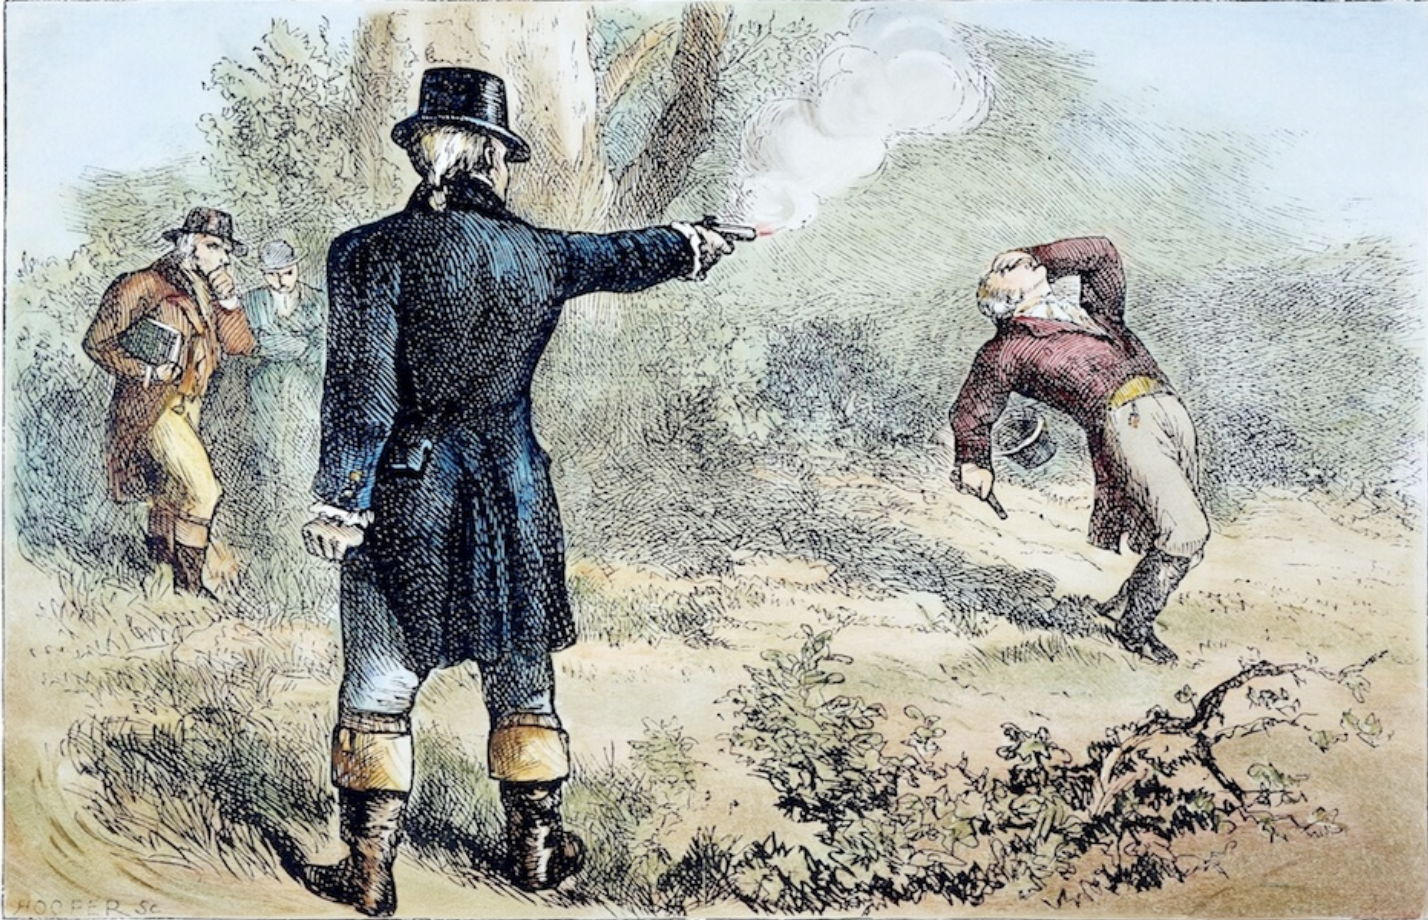 A dramatically imaginative (if inaccurate) 19thc illustration of the duel between Hamilton & Burr.